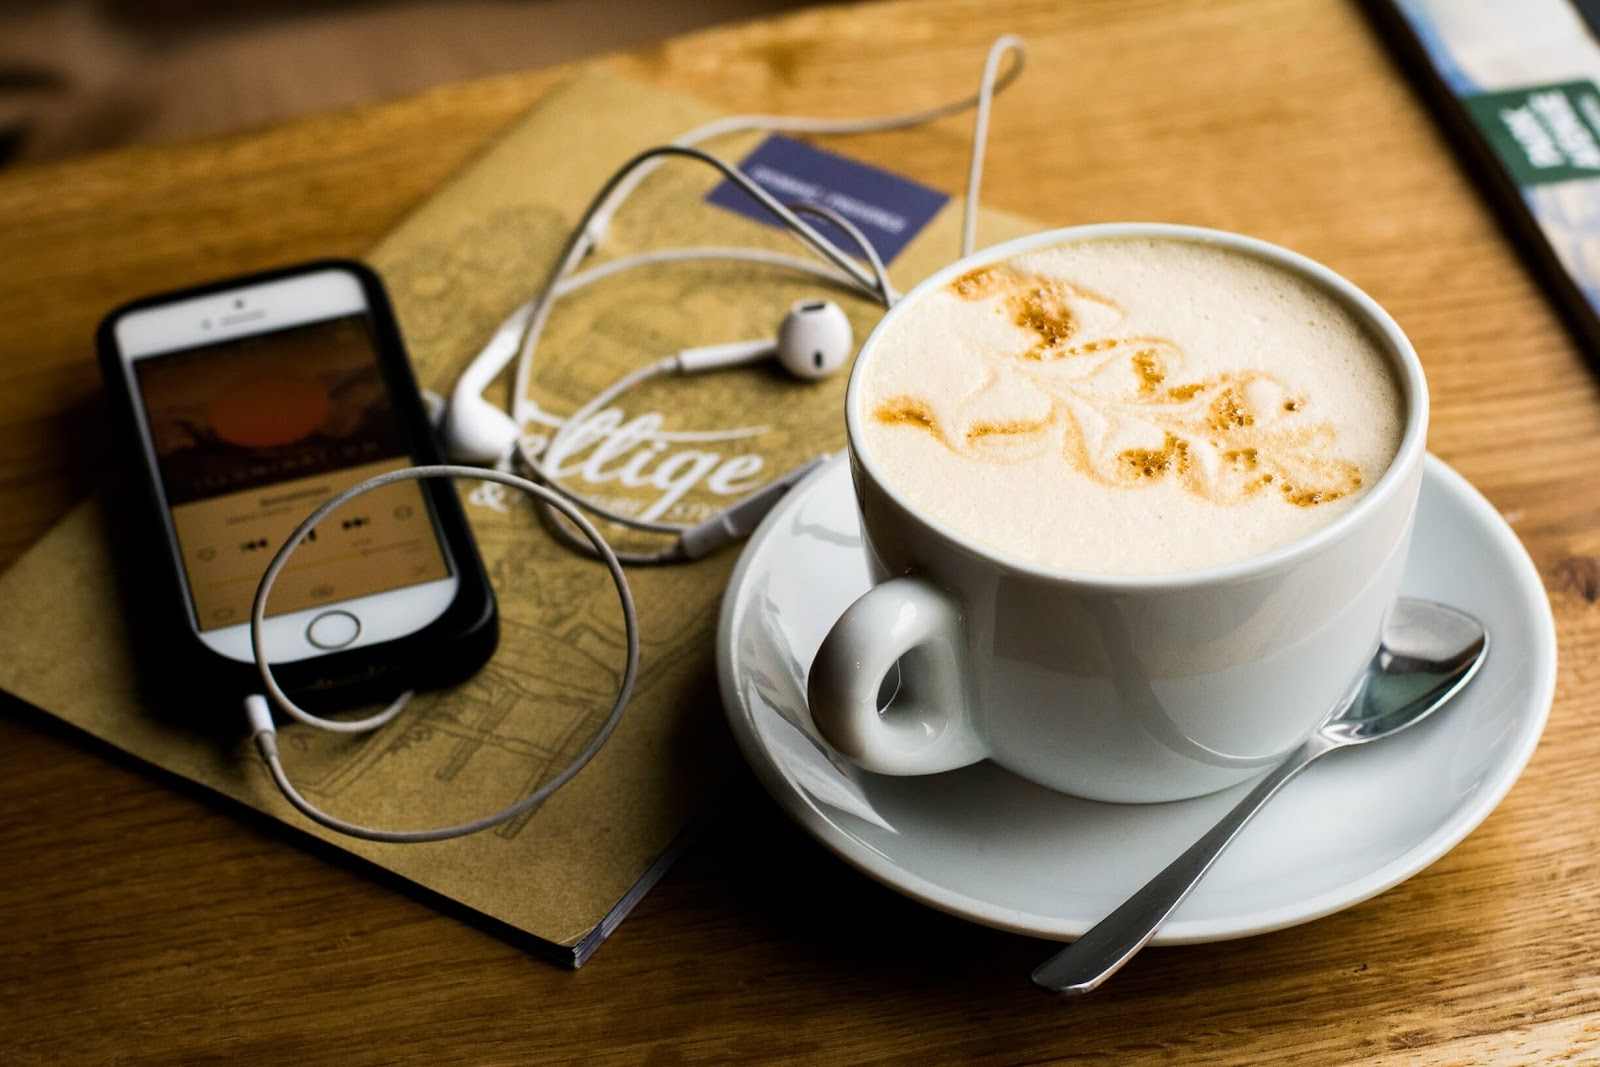 A phone with headphones, playing music on a coffee shop table